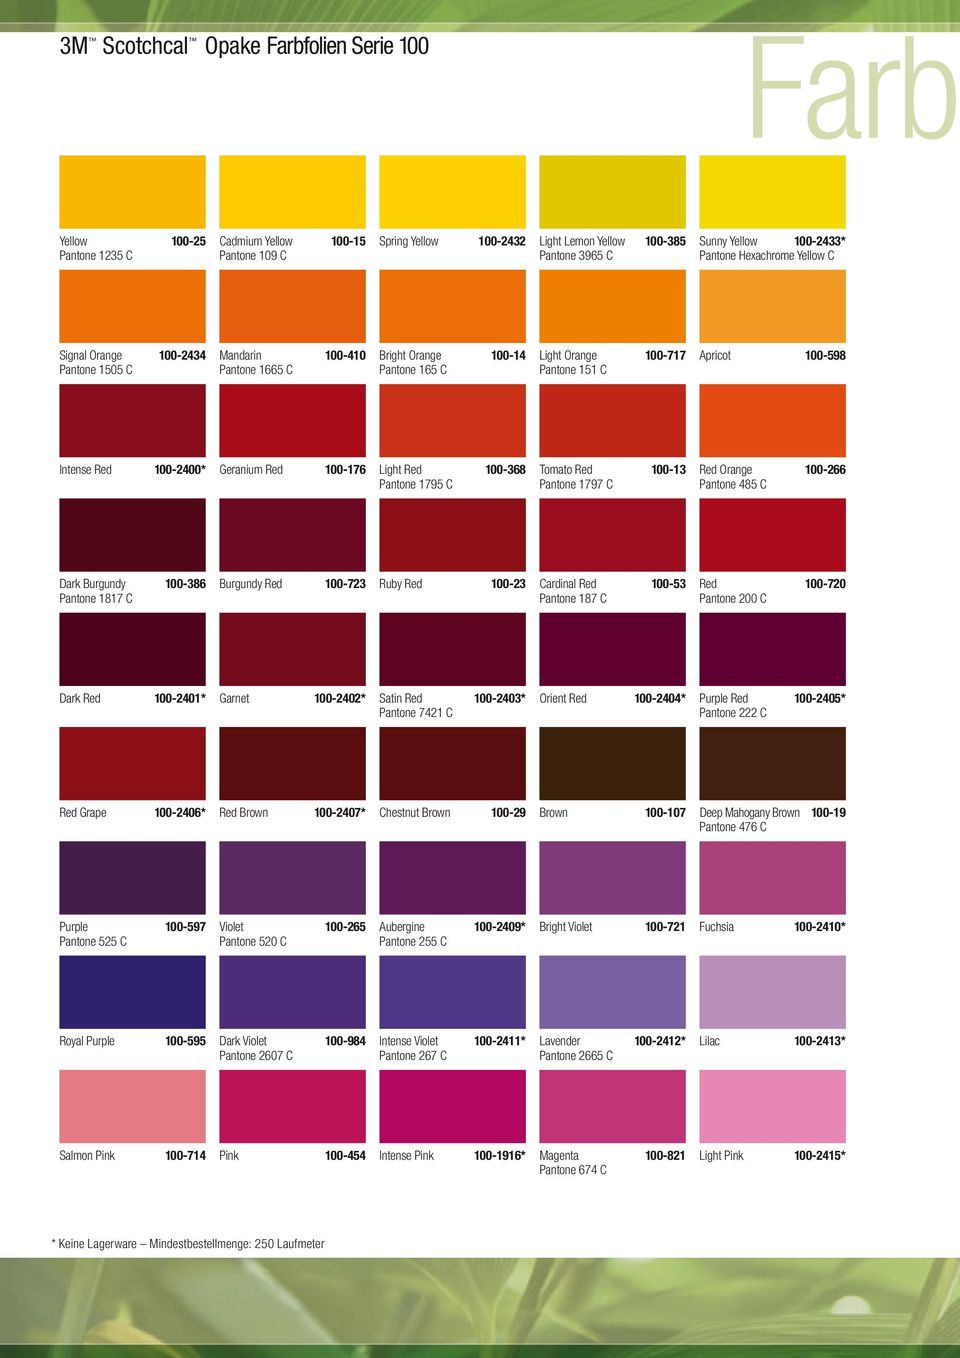 100-2400* Geranium Red 100-176 Light Red 100-368 Pantone 1795 C Tomato Red 100-13 Pantone 1797 C Red Orange 100-266 Pantone 485 C Dark Burgundy 100-386 Pantone 1817 C Burgundy Red 100-723 Ruby Red